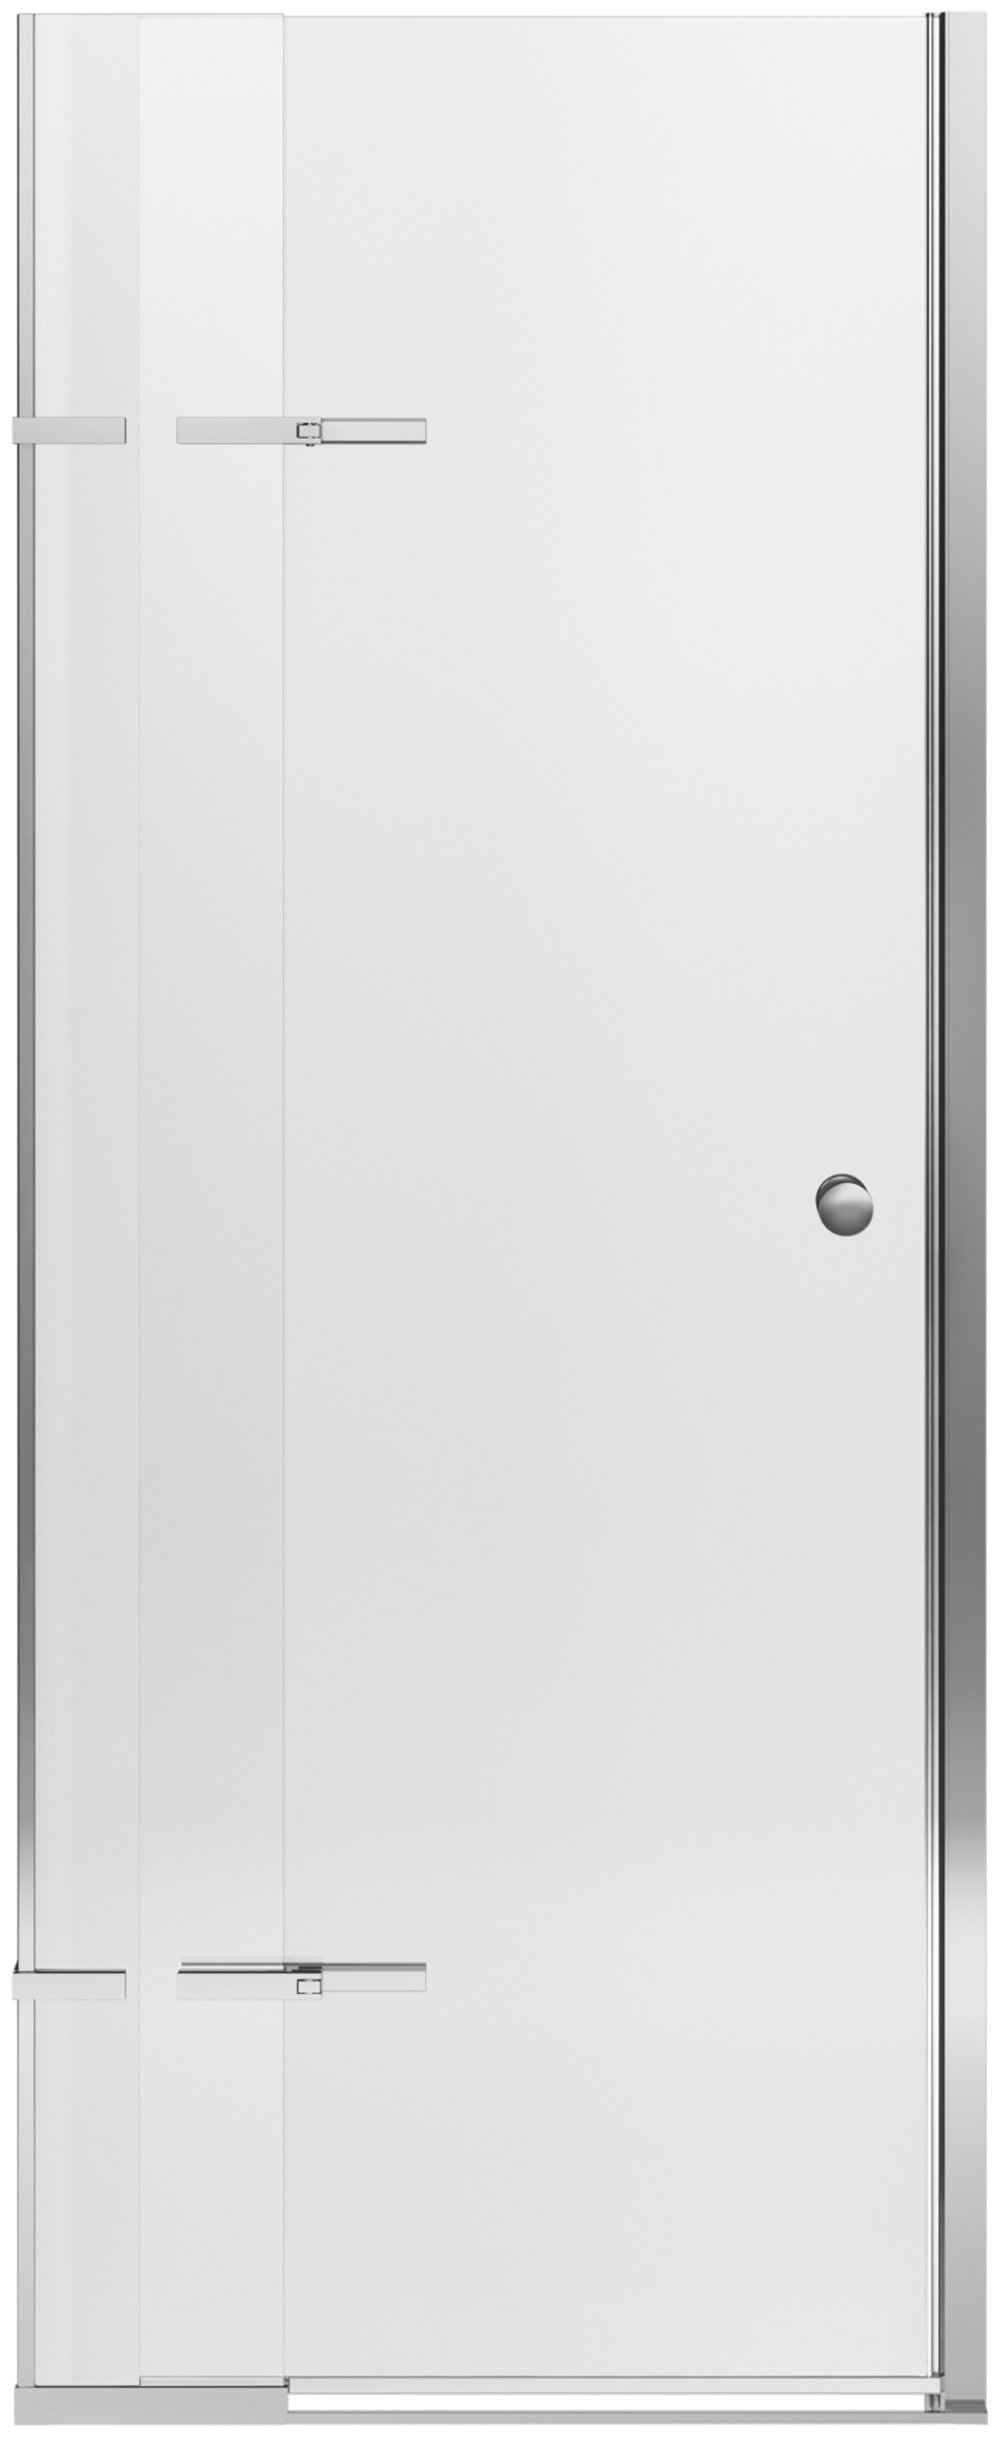 KOHLER K-709032-L-SHP Underline Pivoting Shower Door, 69-1/2'' H x 28 to 31'' Width with Adjustable Hinges and 1/4'' Thick Crystal Clear Glass, Bright Polished Silver